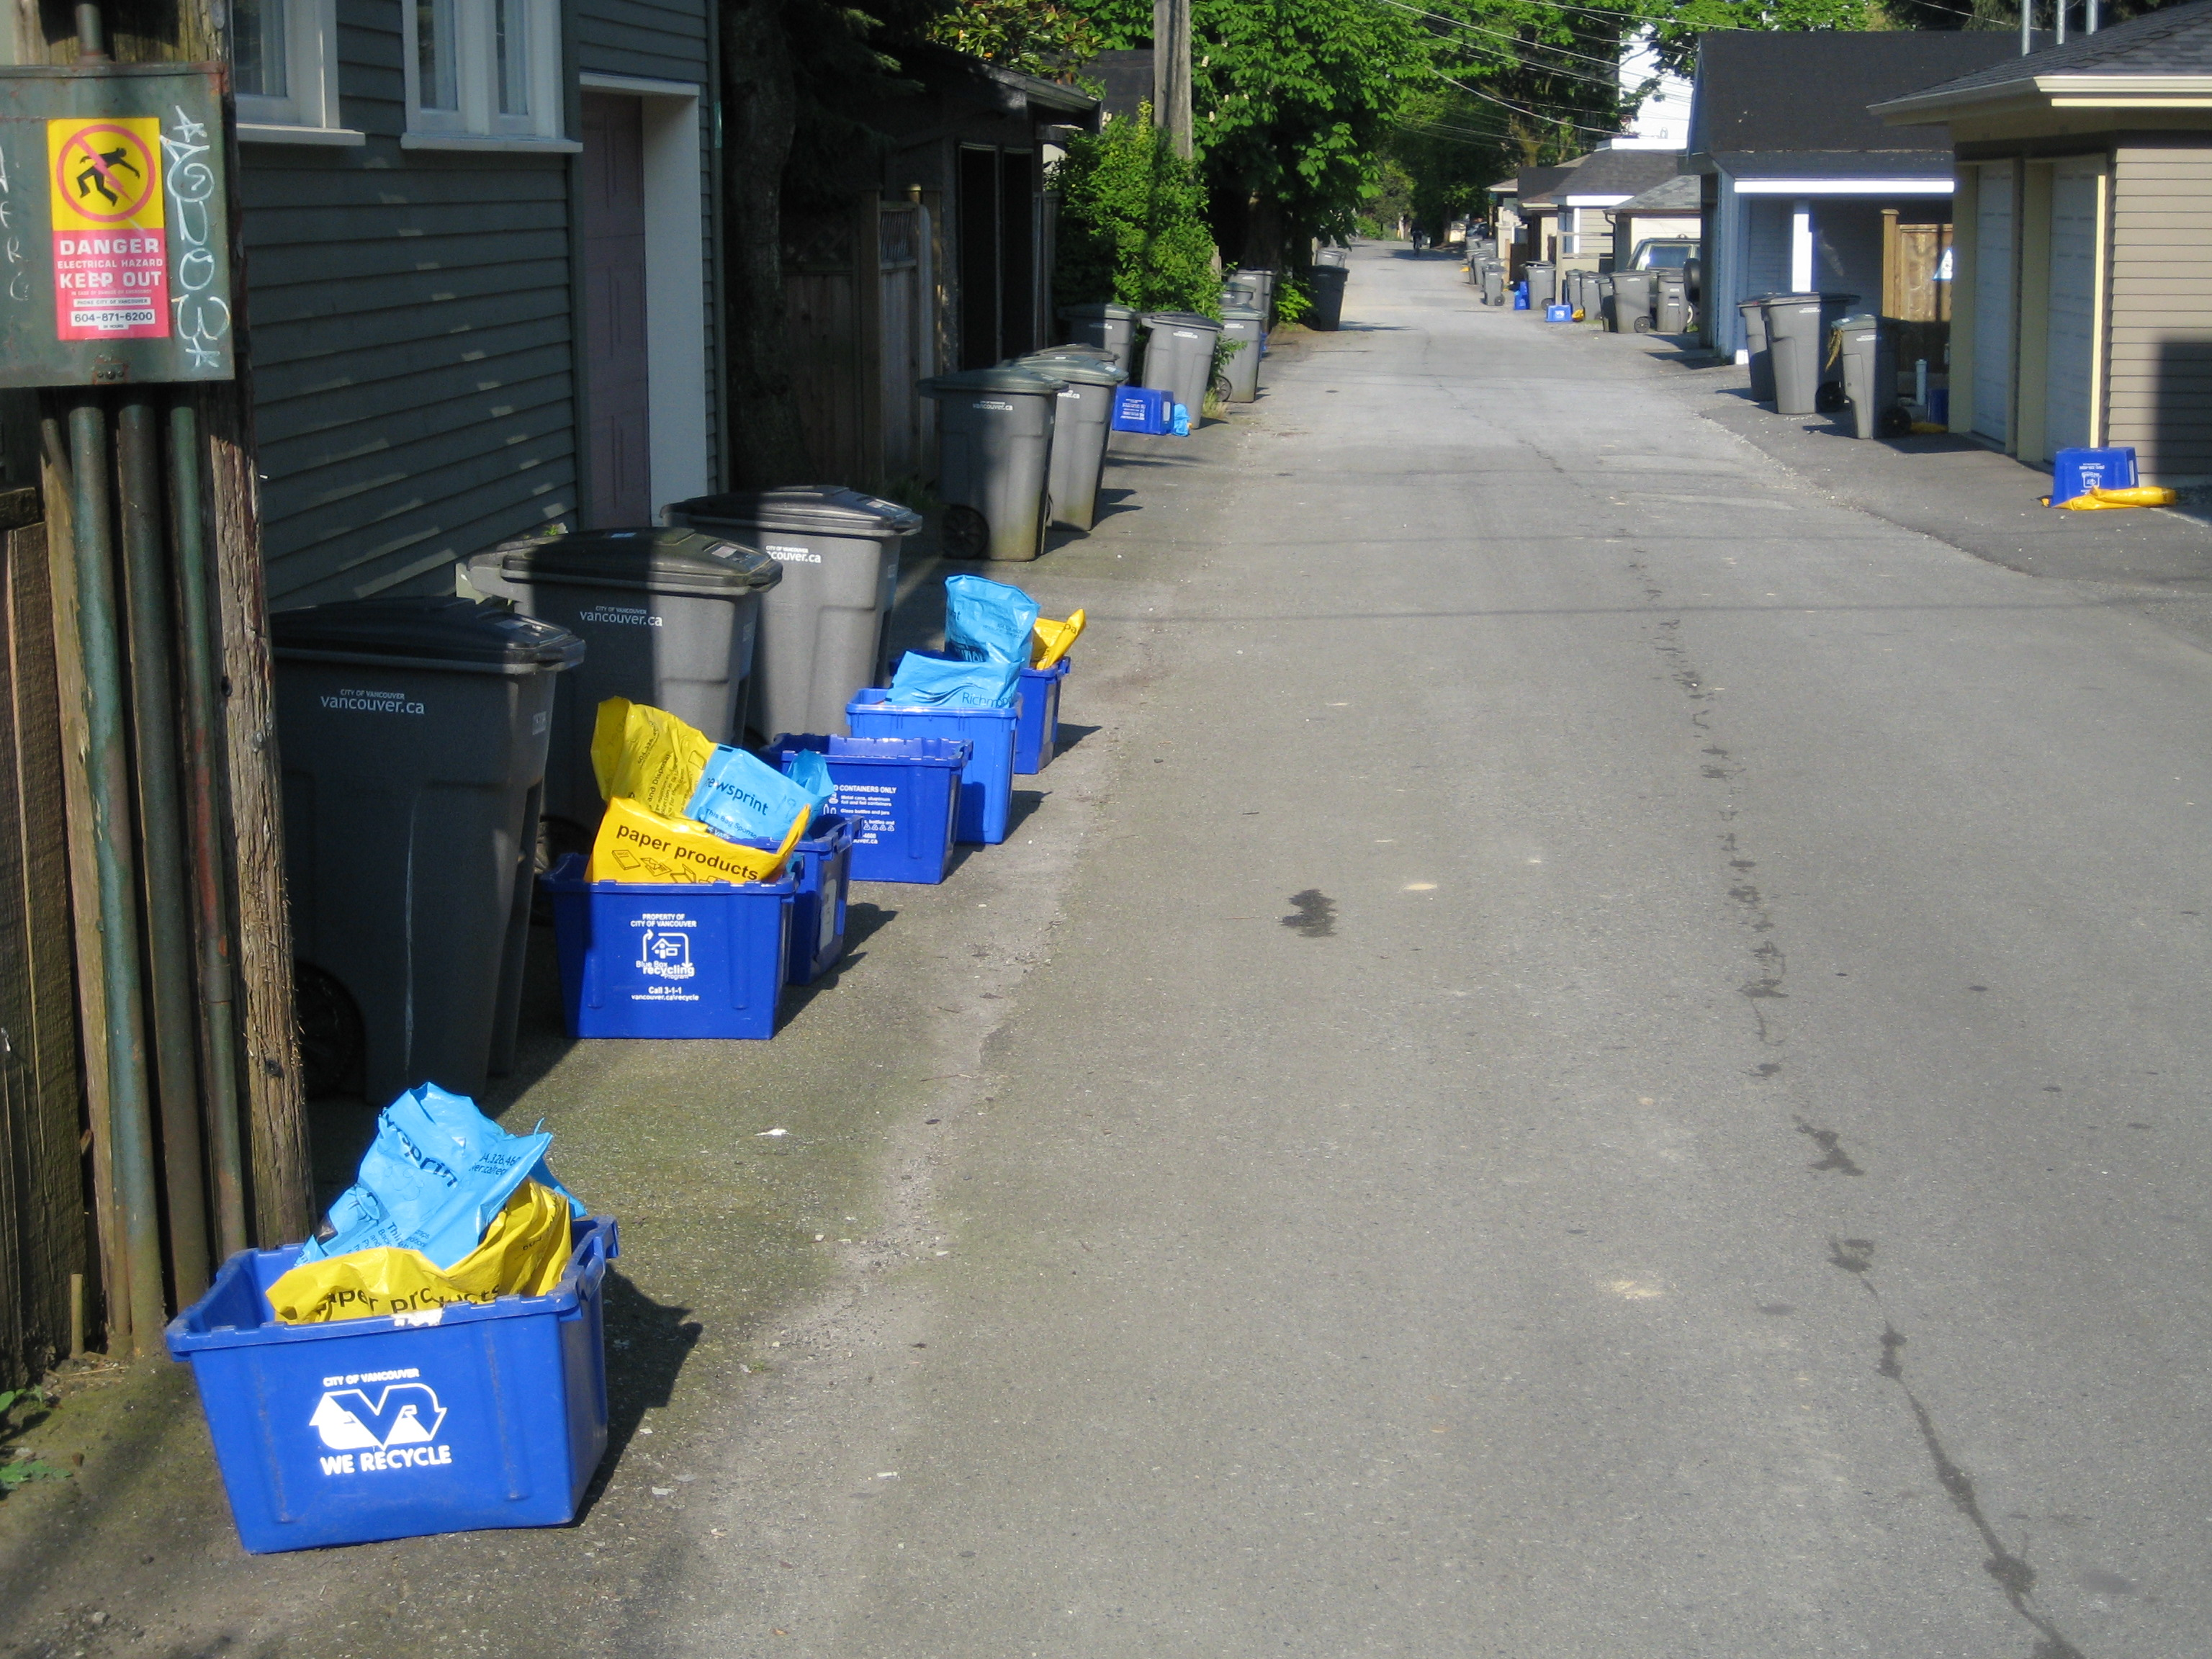 Blue bins are a signifier in a climate change landscape. What do they mean to you? Photo: S. Sheppard